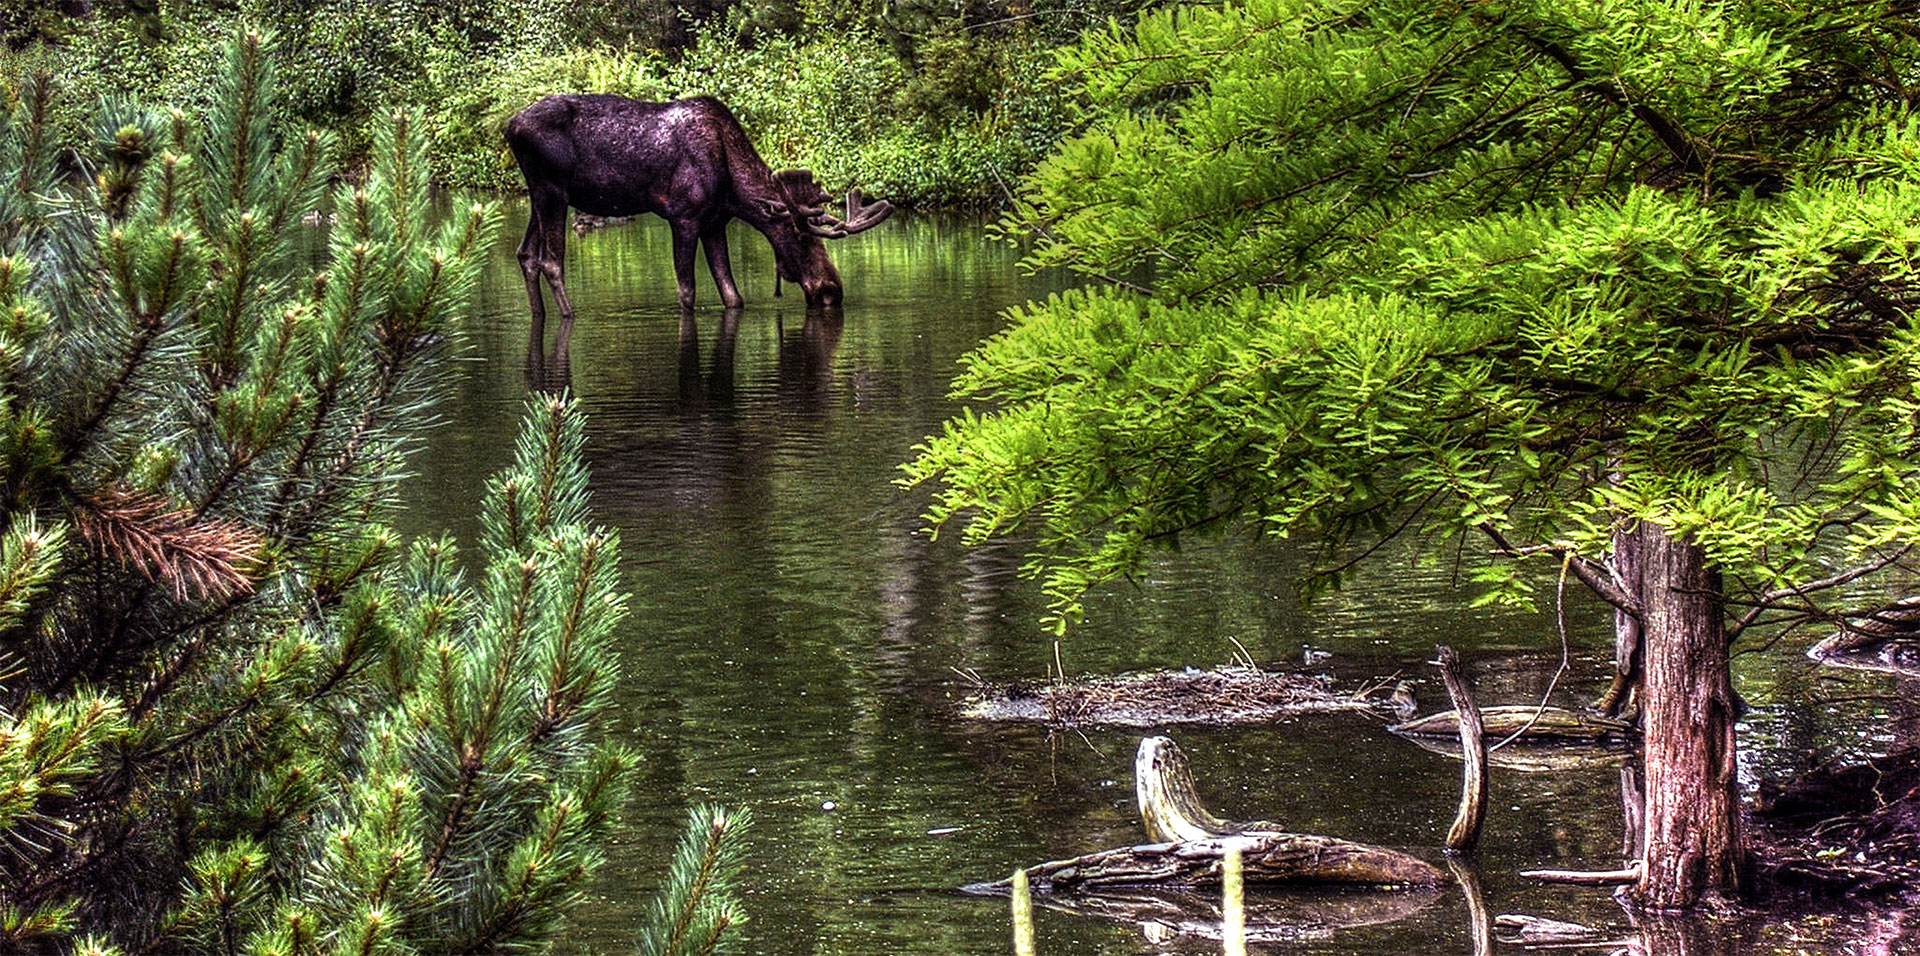 Summer Moose Day - July 25th, 2020